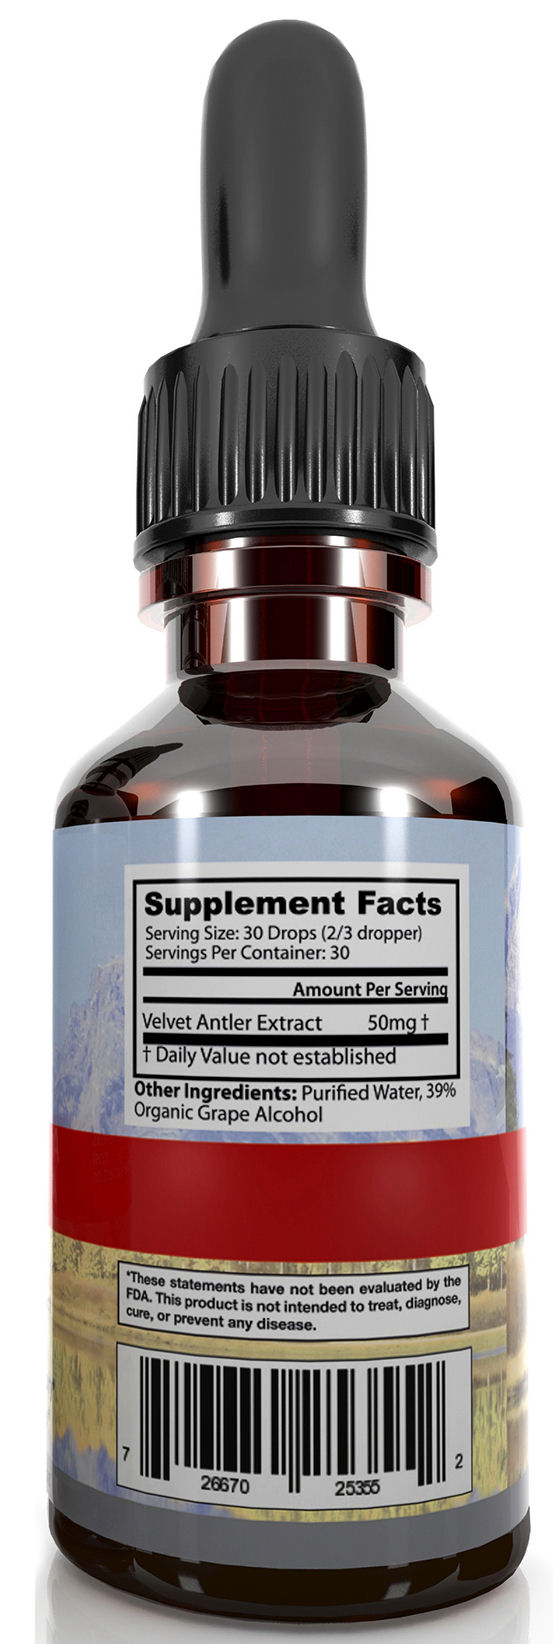 Deer Antler Velvet Extract Platinum Supplement Facts